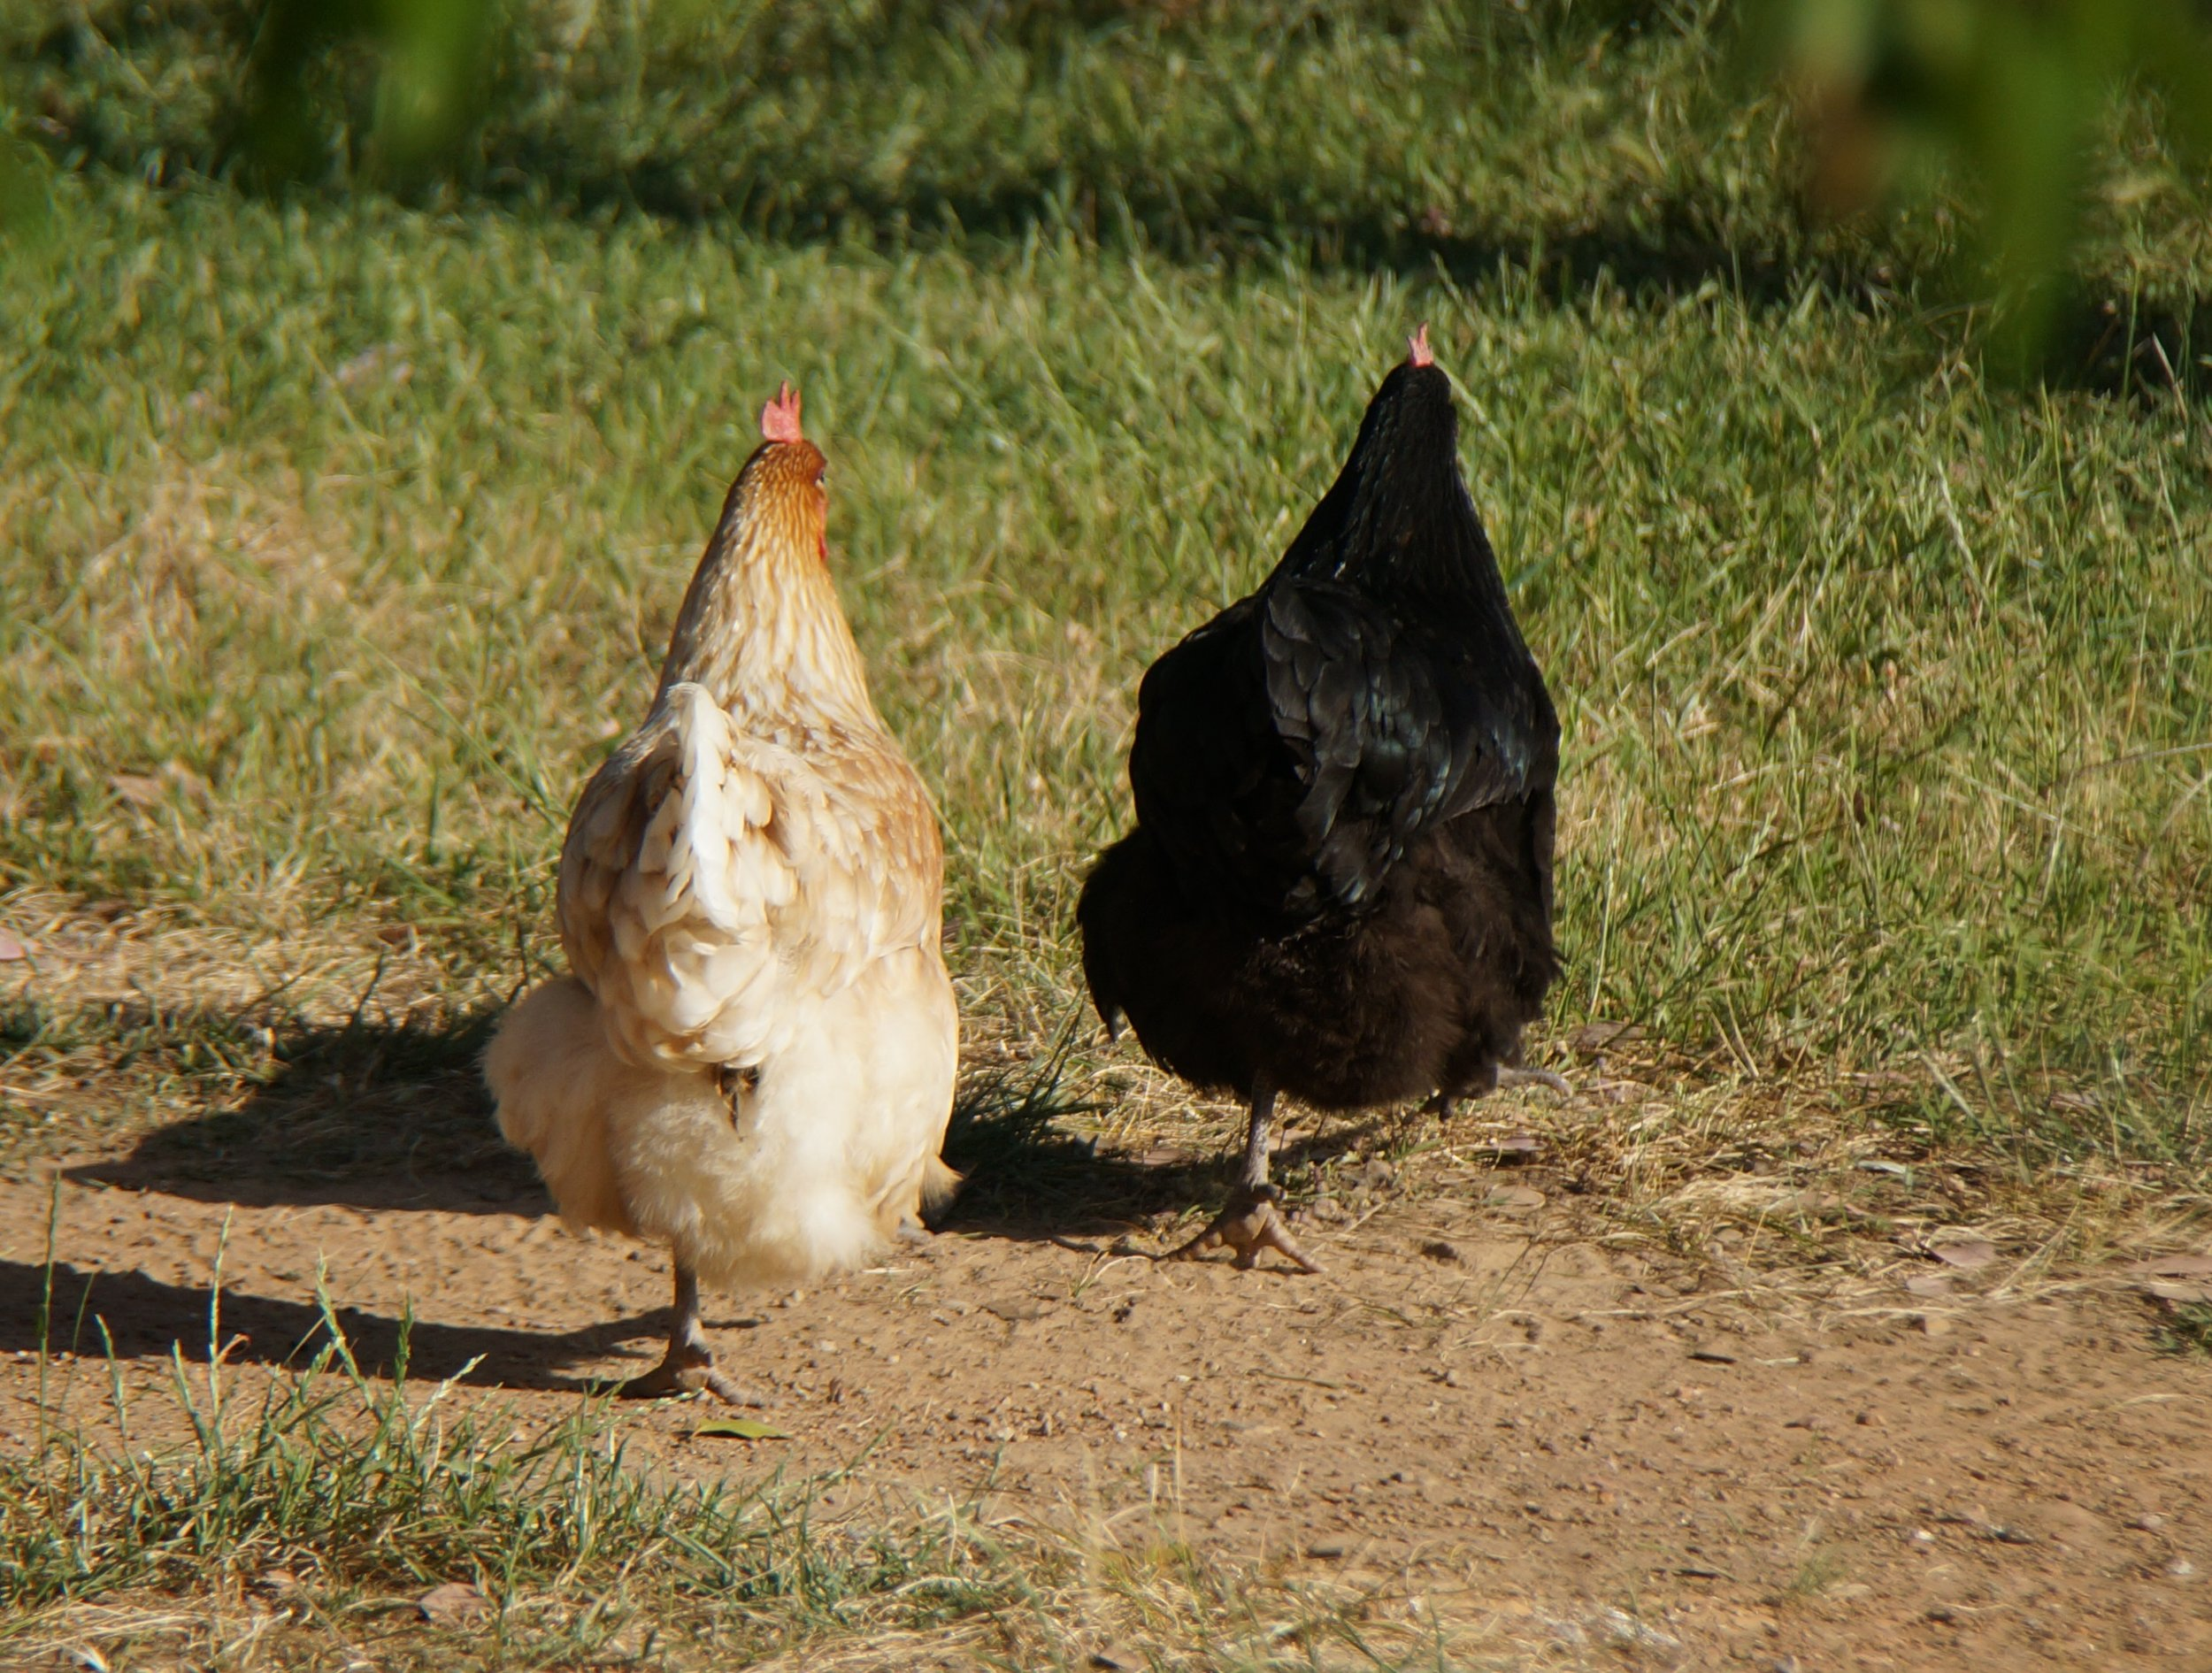 Mixed breeds of chickens